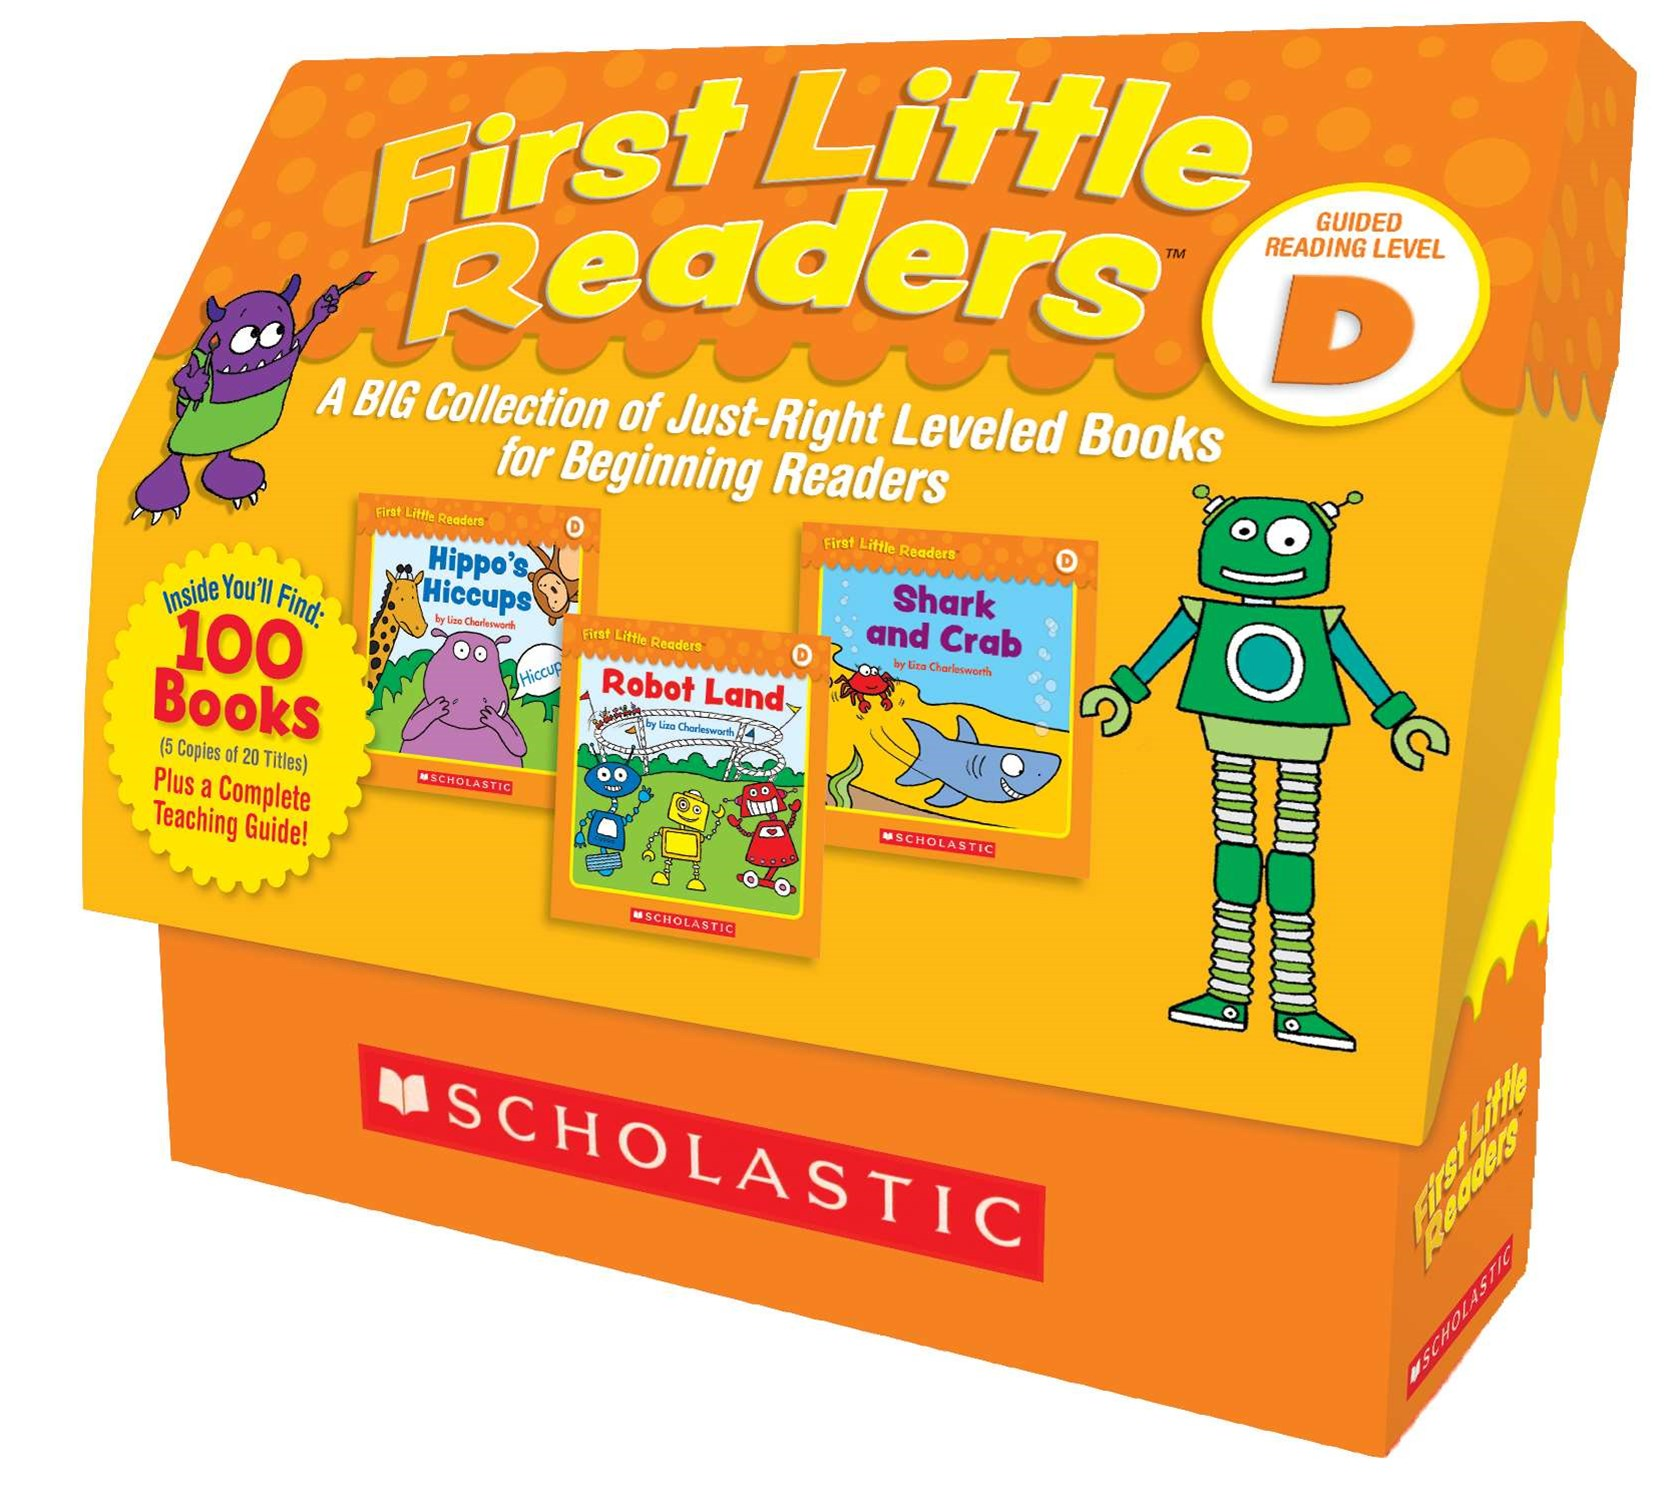 A BIG Collection of Just-Right Leveled Books for Beginning Readers